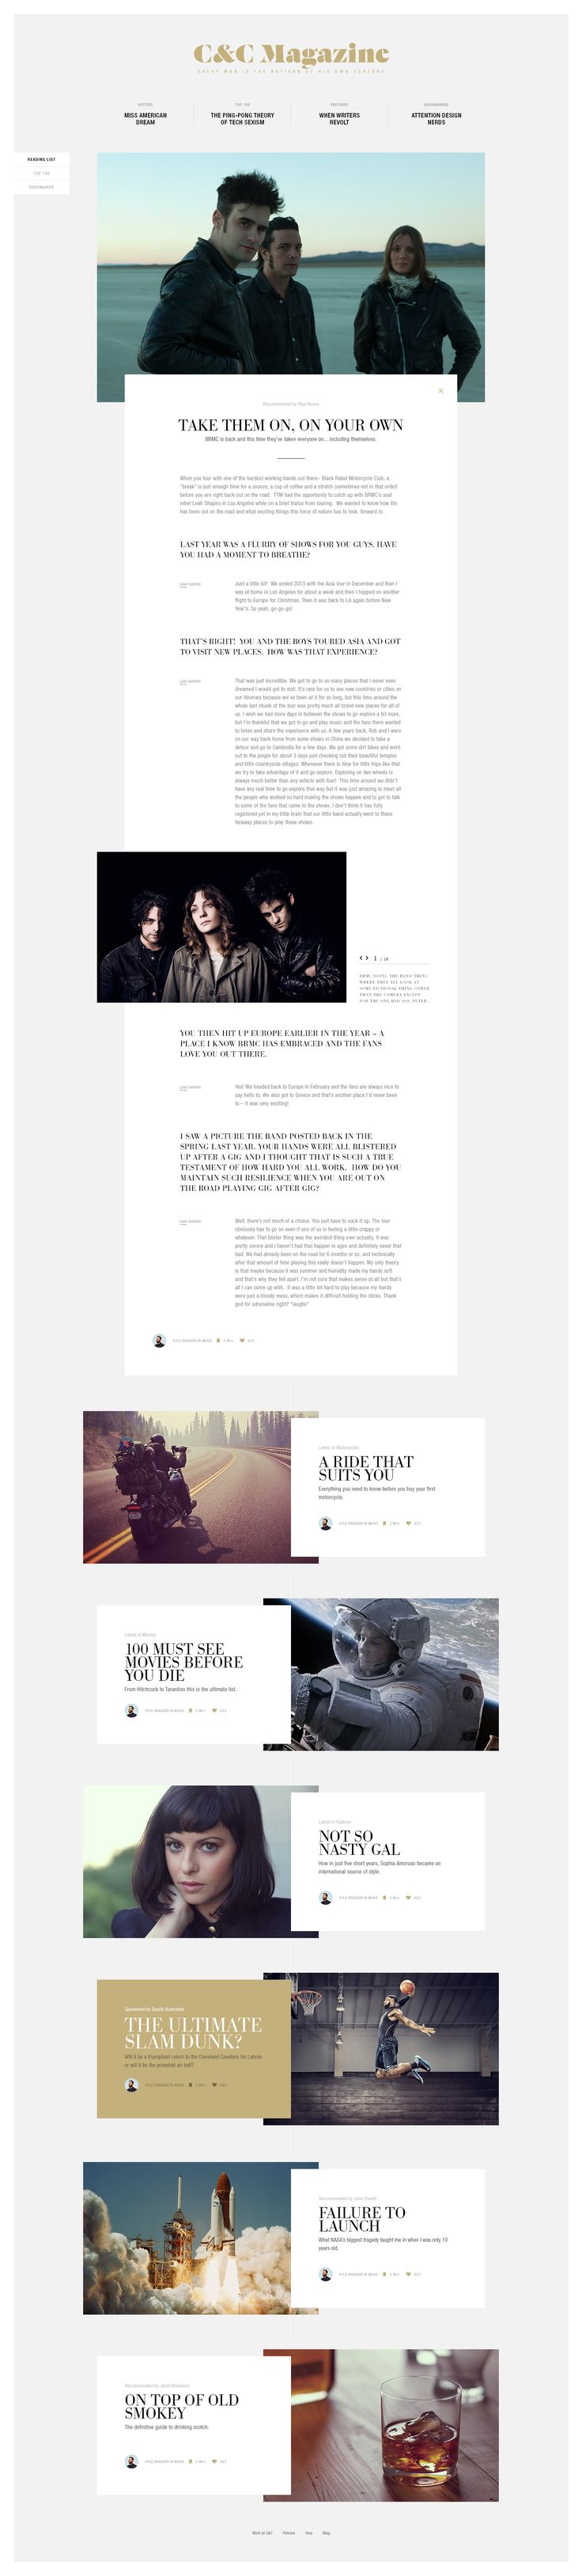 I love this simple and clean layout that the magazine have use the whole way through. The photographs have minimum effects on them and the layout of the text is standard and symmetrical.